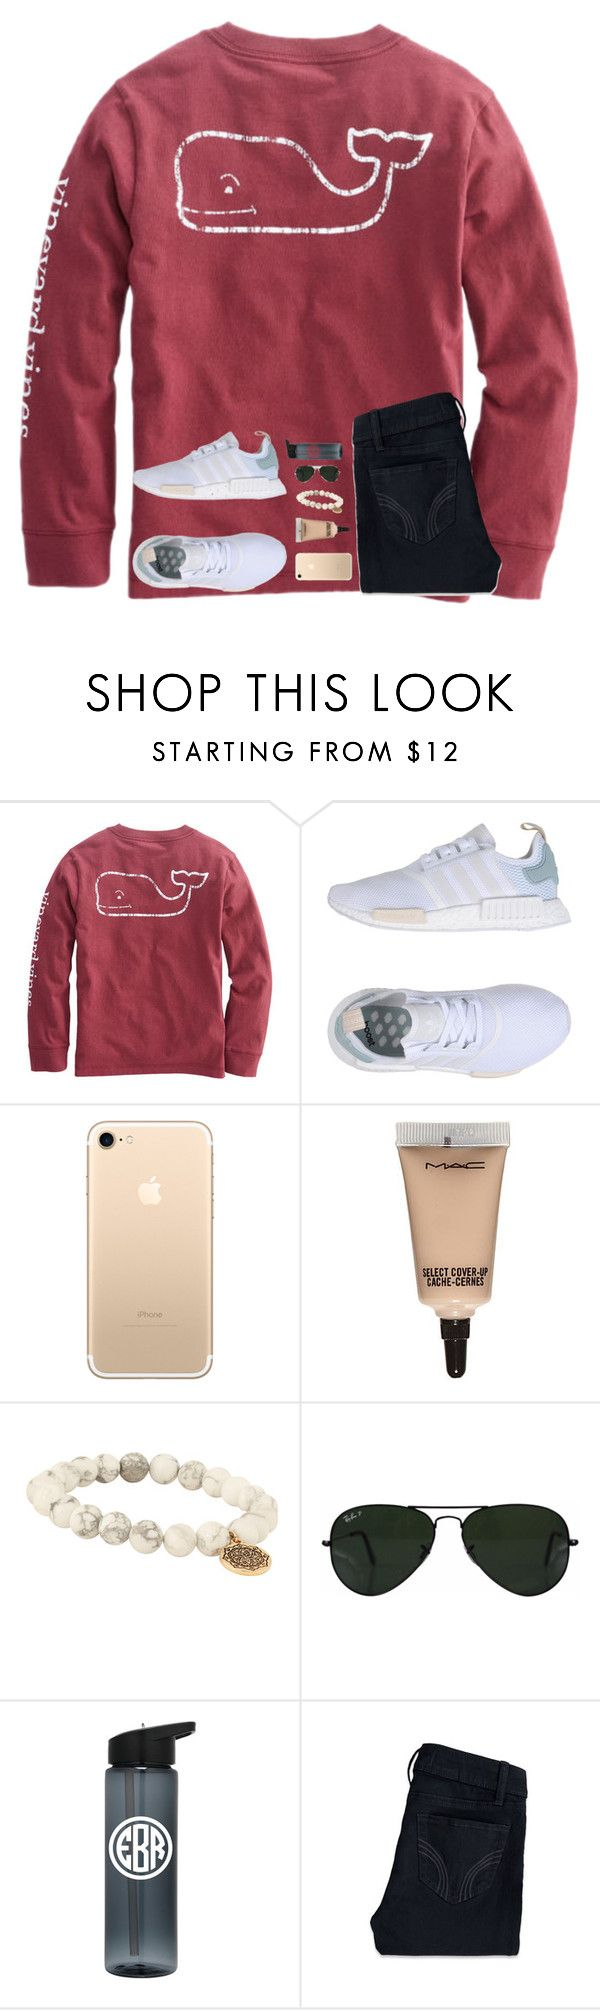 """these shoes.woah.///super bowl"" by hgw8503 ❤ liked on Polyvore featuring adidas Originals, MAC Cosmetics, ALDO, Ray-Ban and Hollister Co."